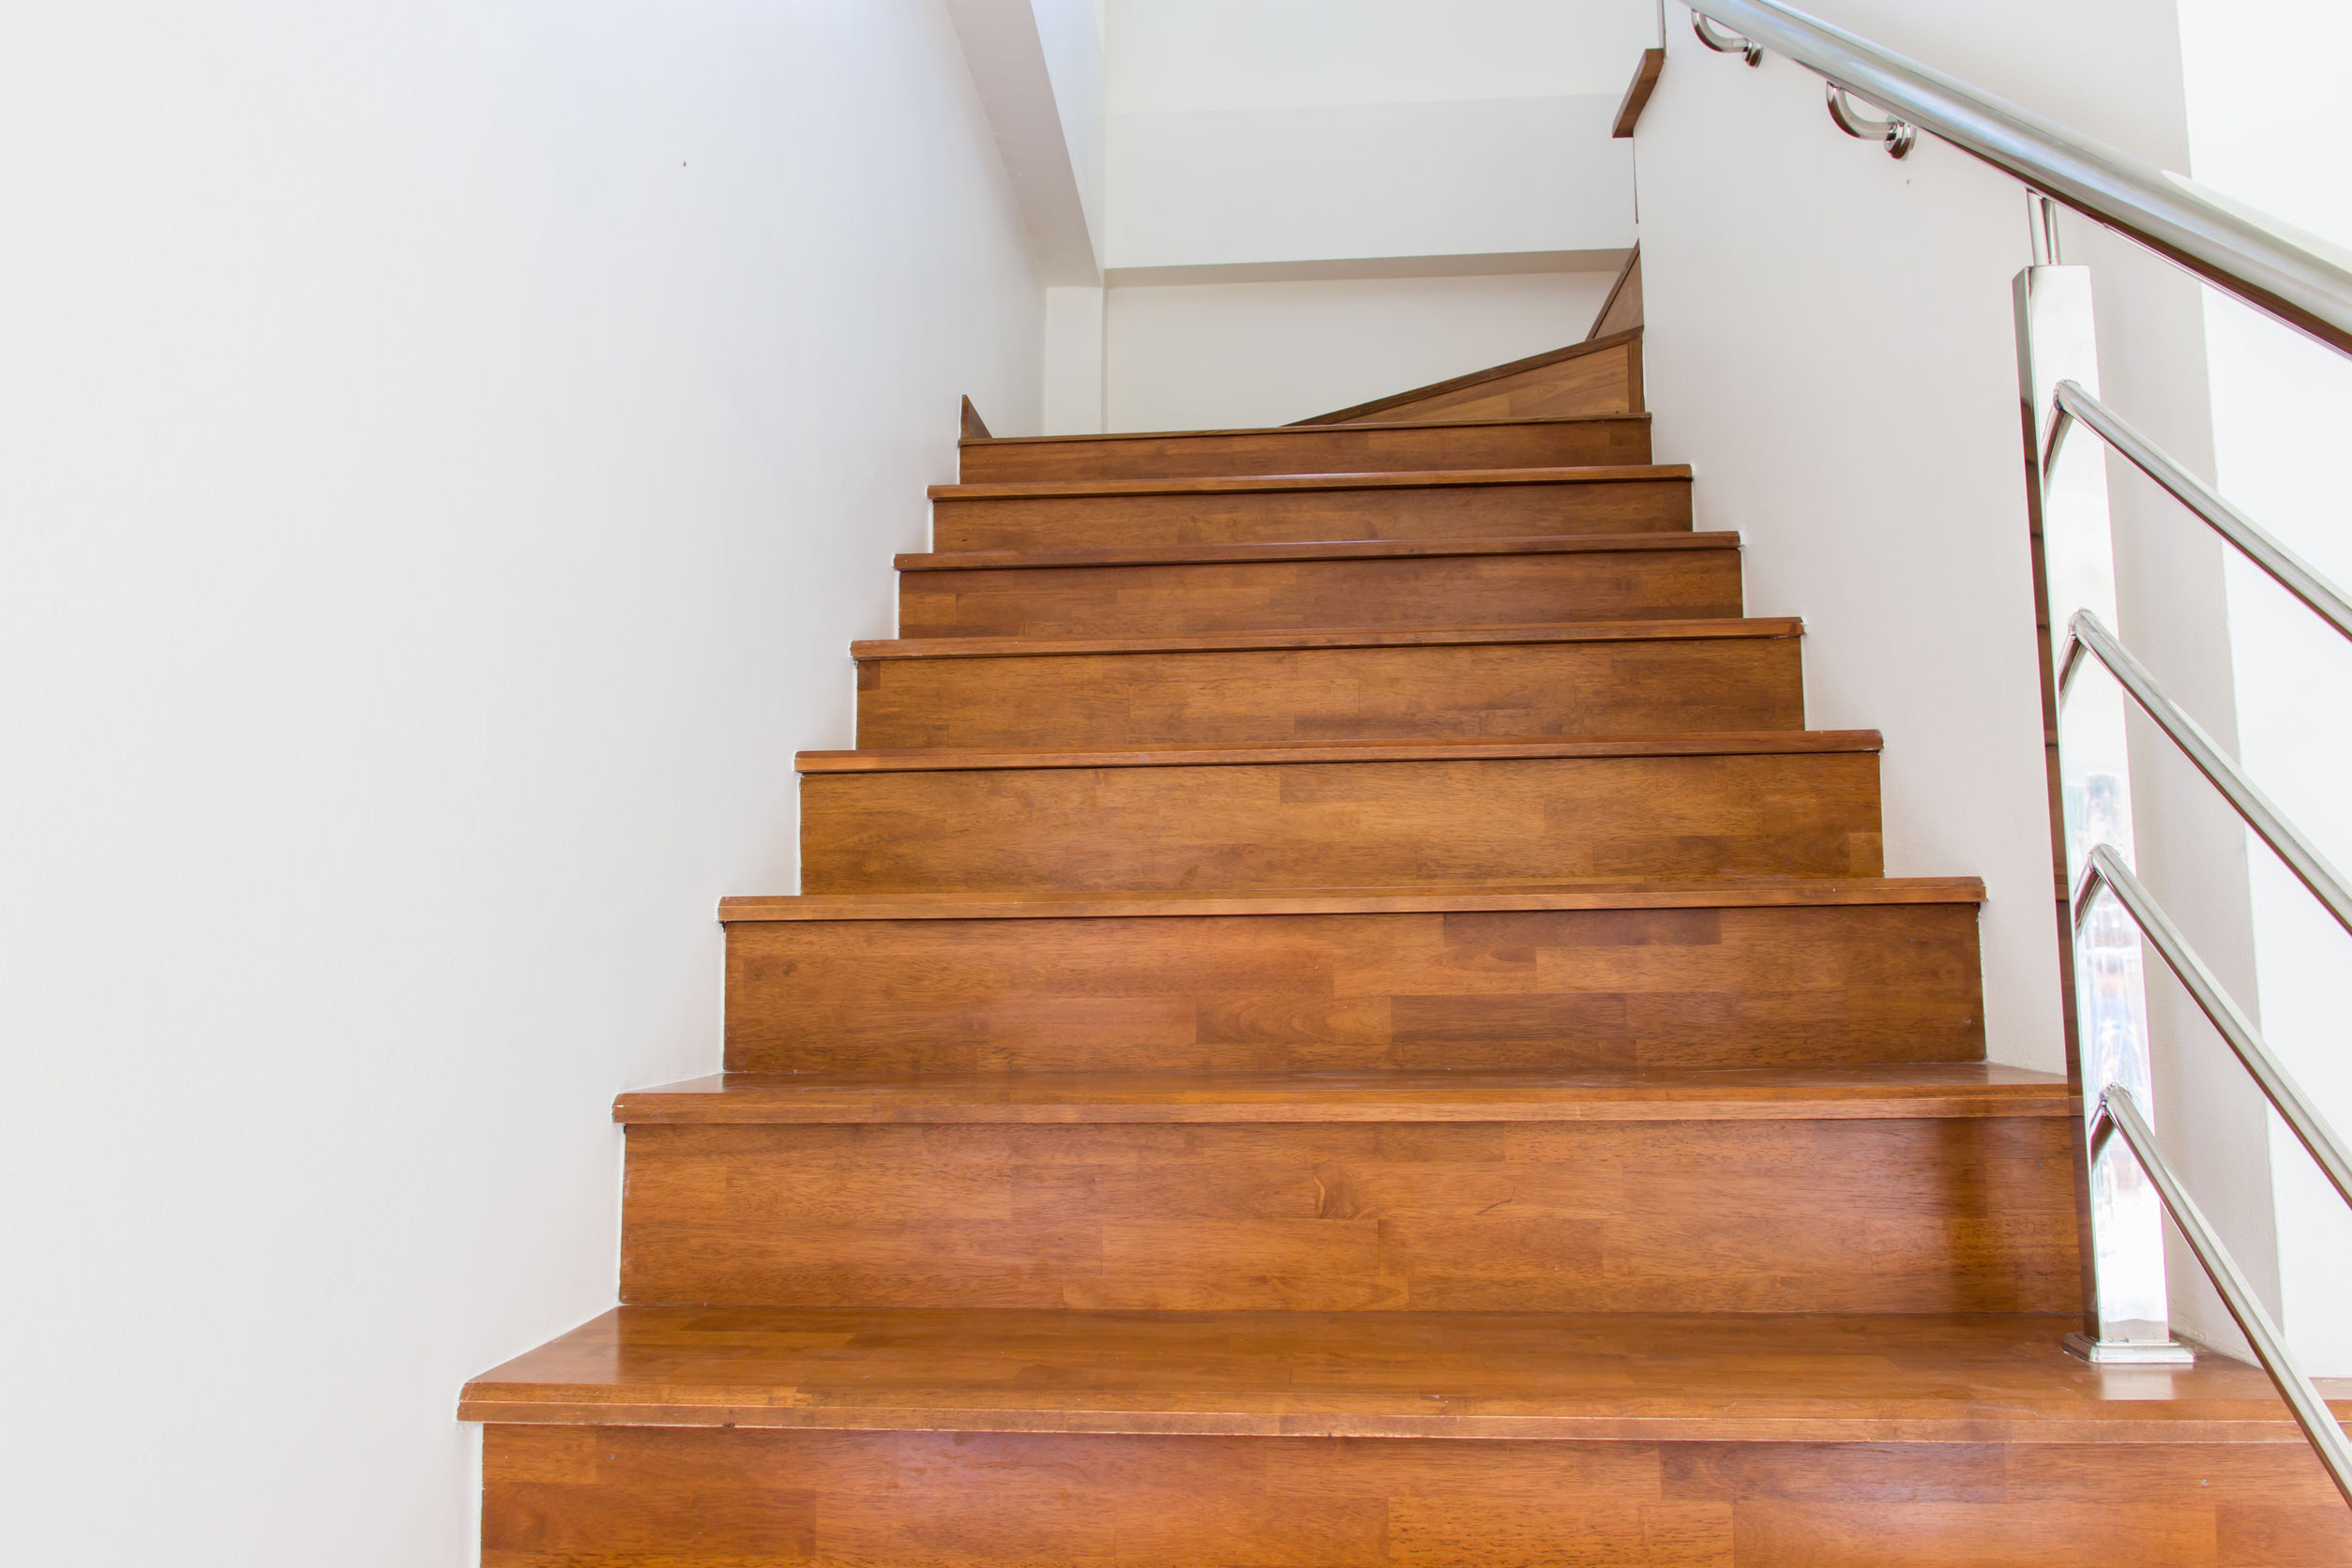 Laminate Flooring On Stairs Why laminate flooring on stairs is essential for home?